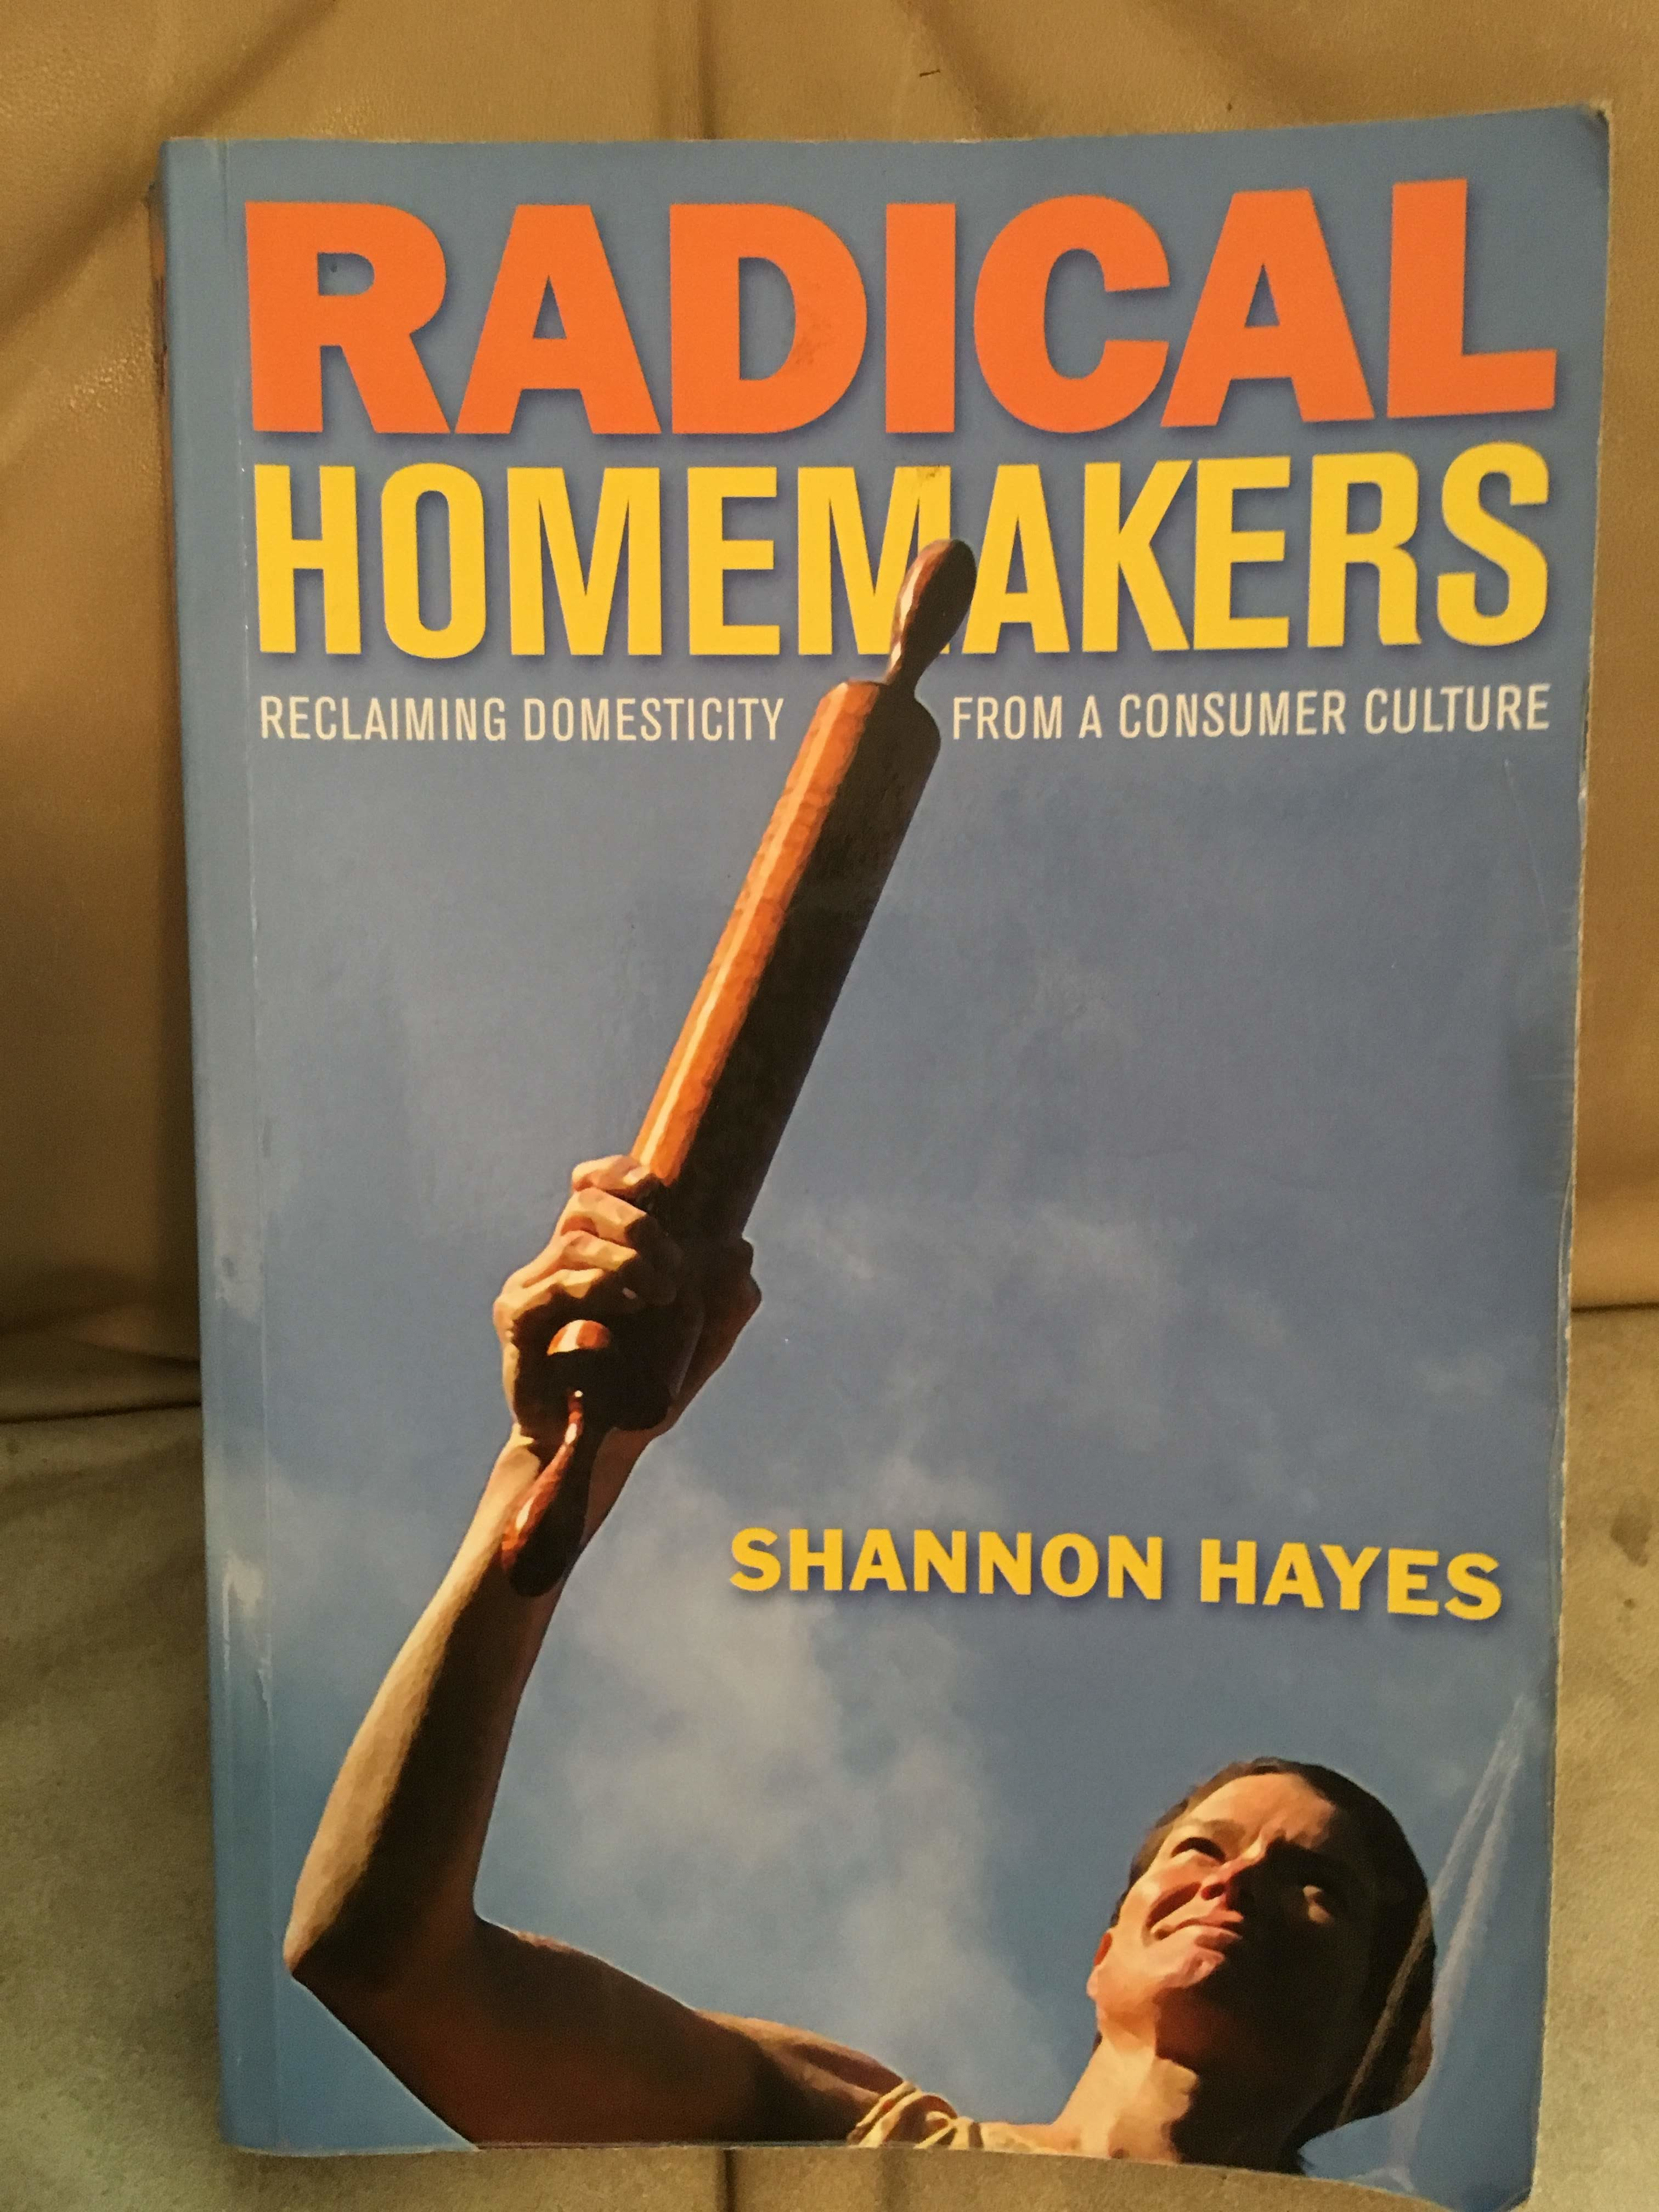 Radical Homemakers Shannon Hayes Sharing Your Home with Children Getting Organized The Best Unschooling Books That Aren't About Unschooling Homeschooling Portland Homeschooling Resources Carolyn Groves